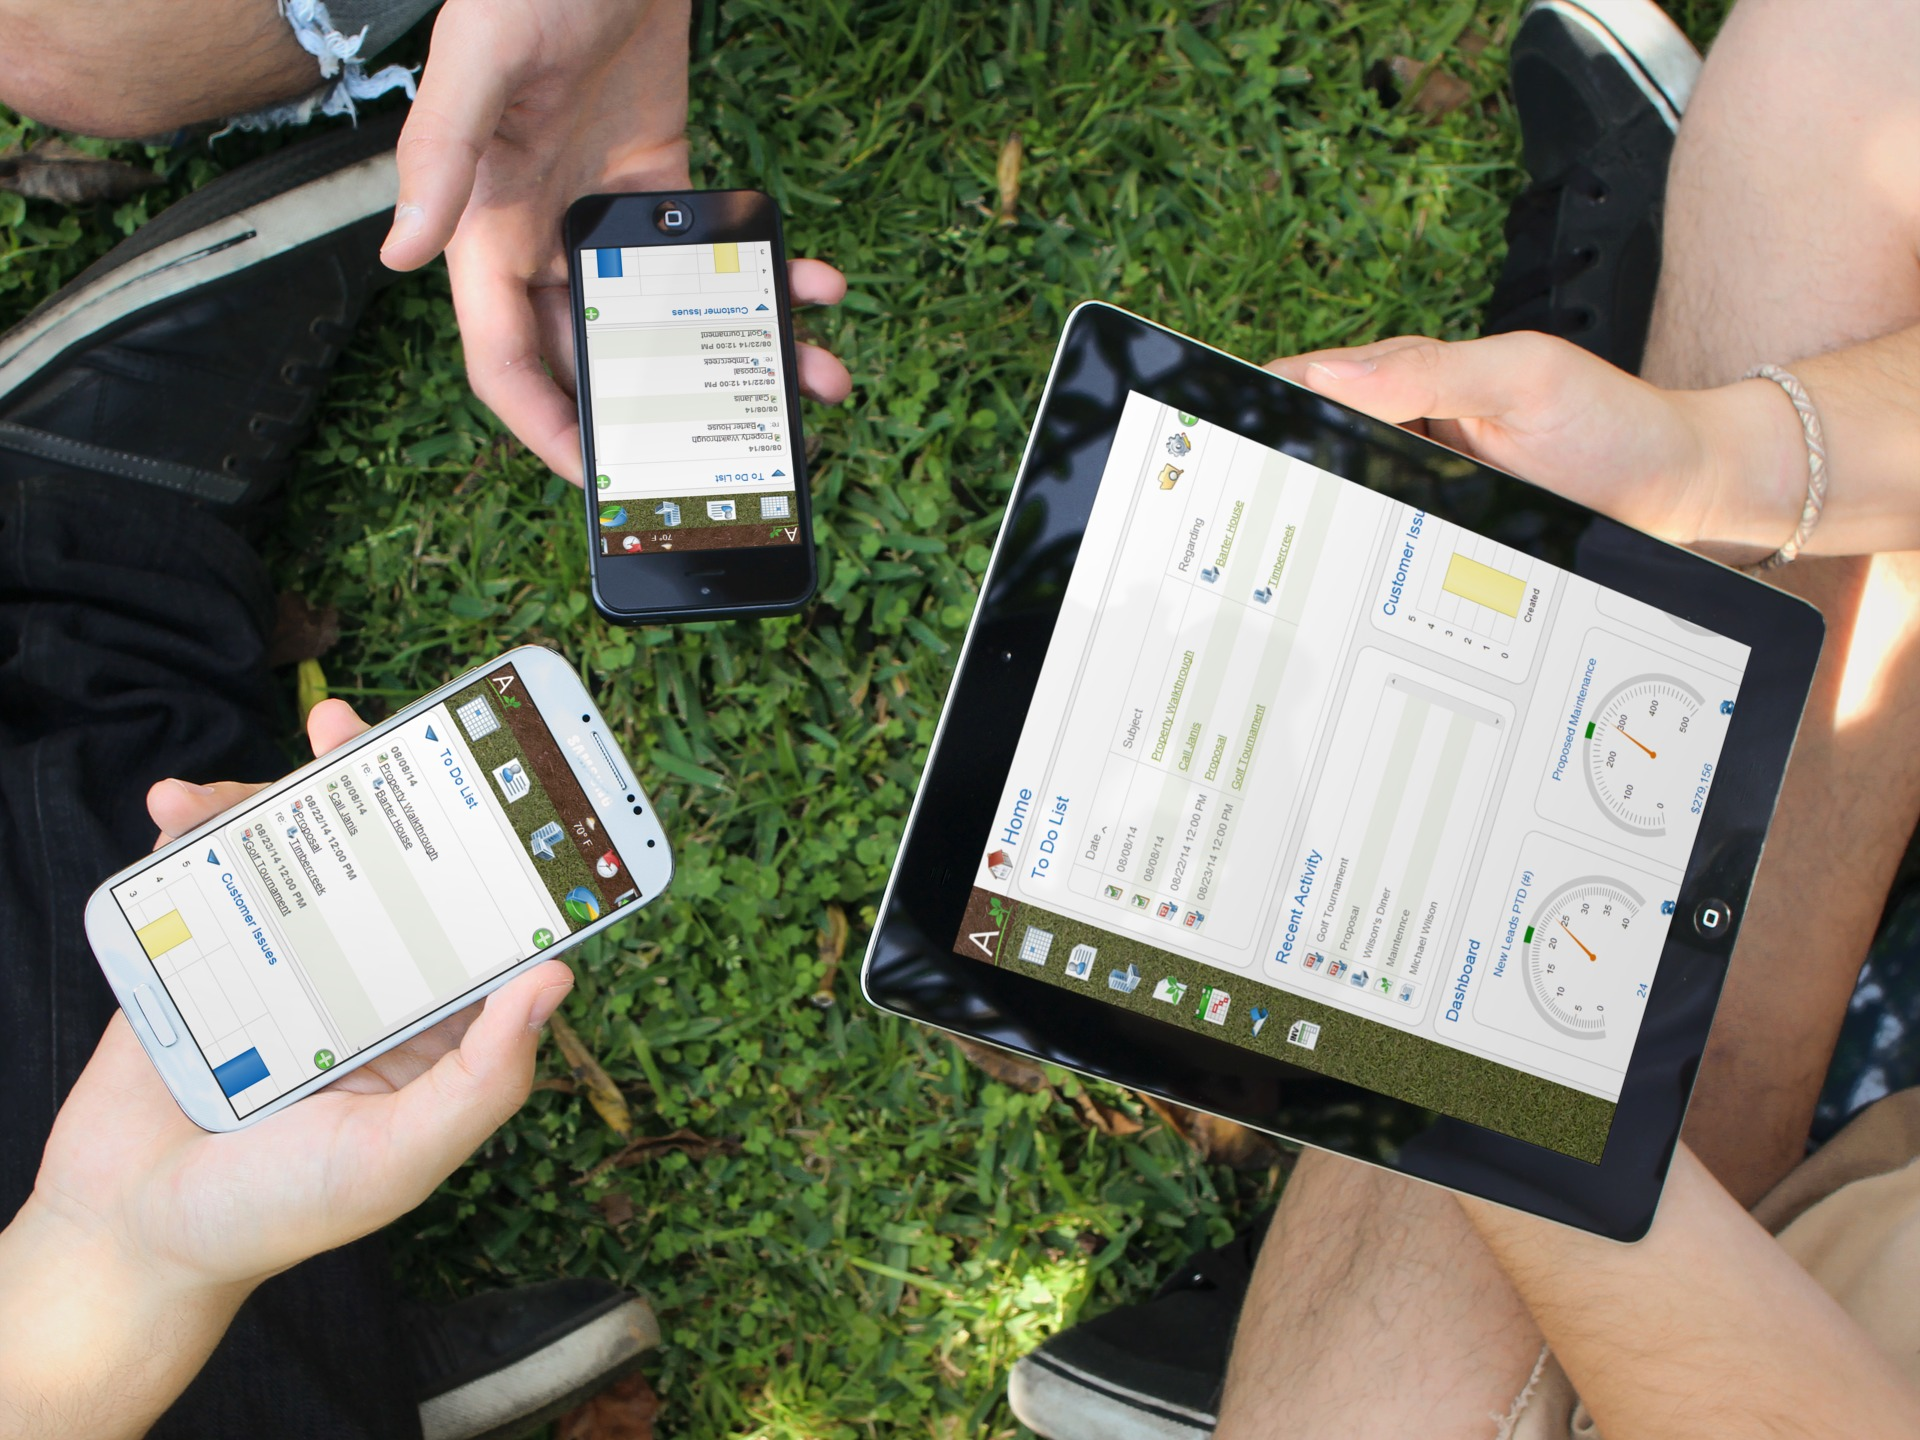 What Tactical Benefits Do You Get From Landscape Management Software?